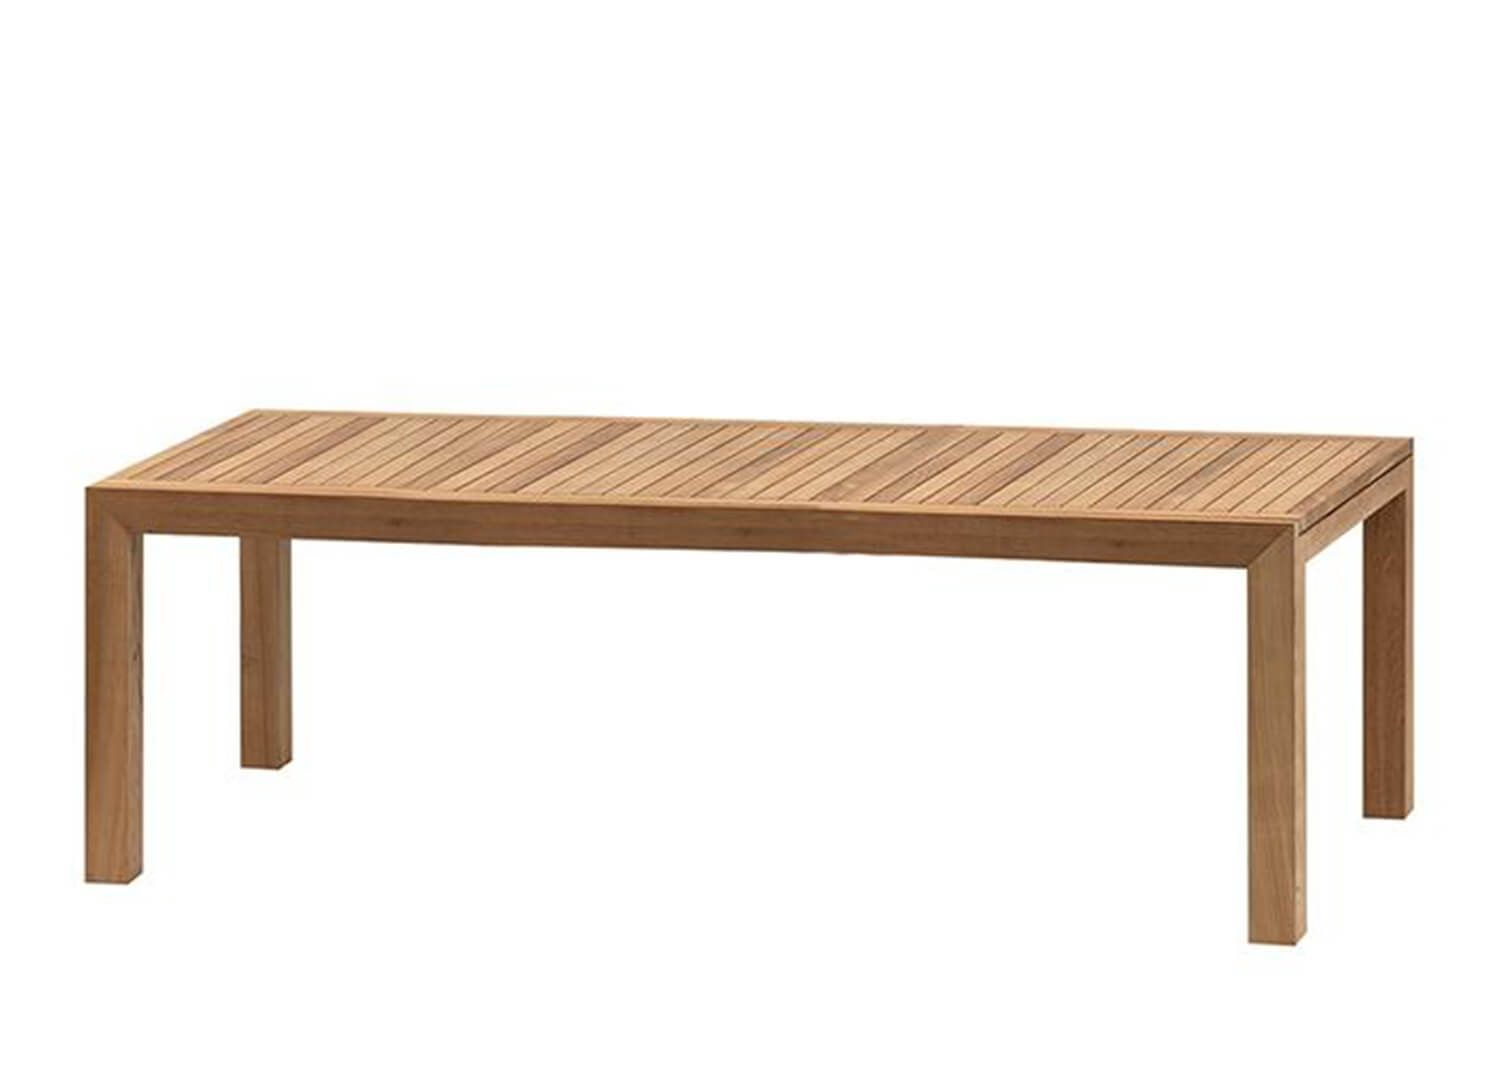 Ixit Dining Table By Royal Botania For Parterre Dining Table Teak Outdoor Furniture Outdoor Furniture